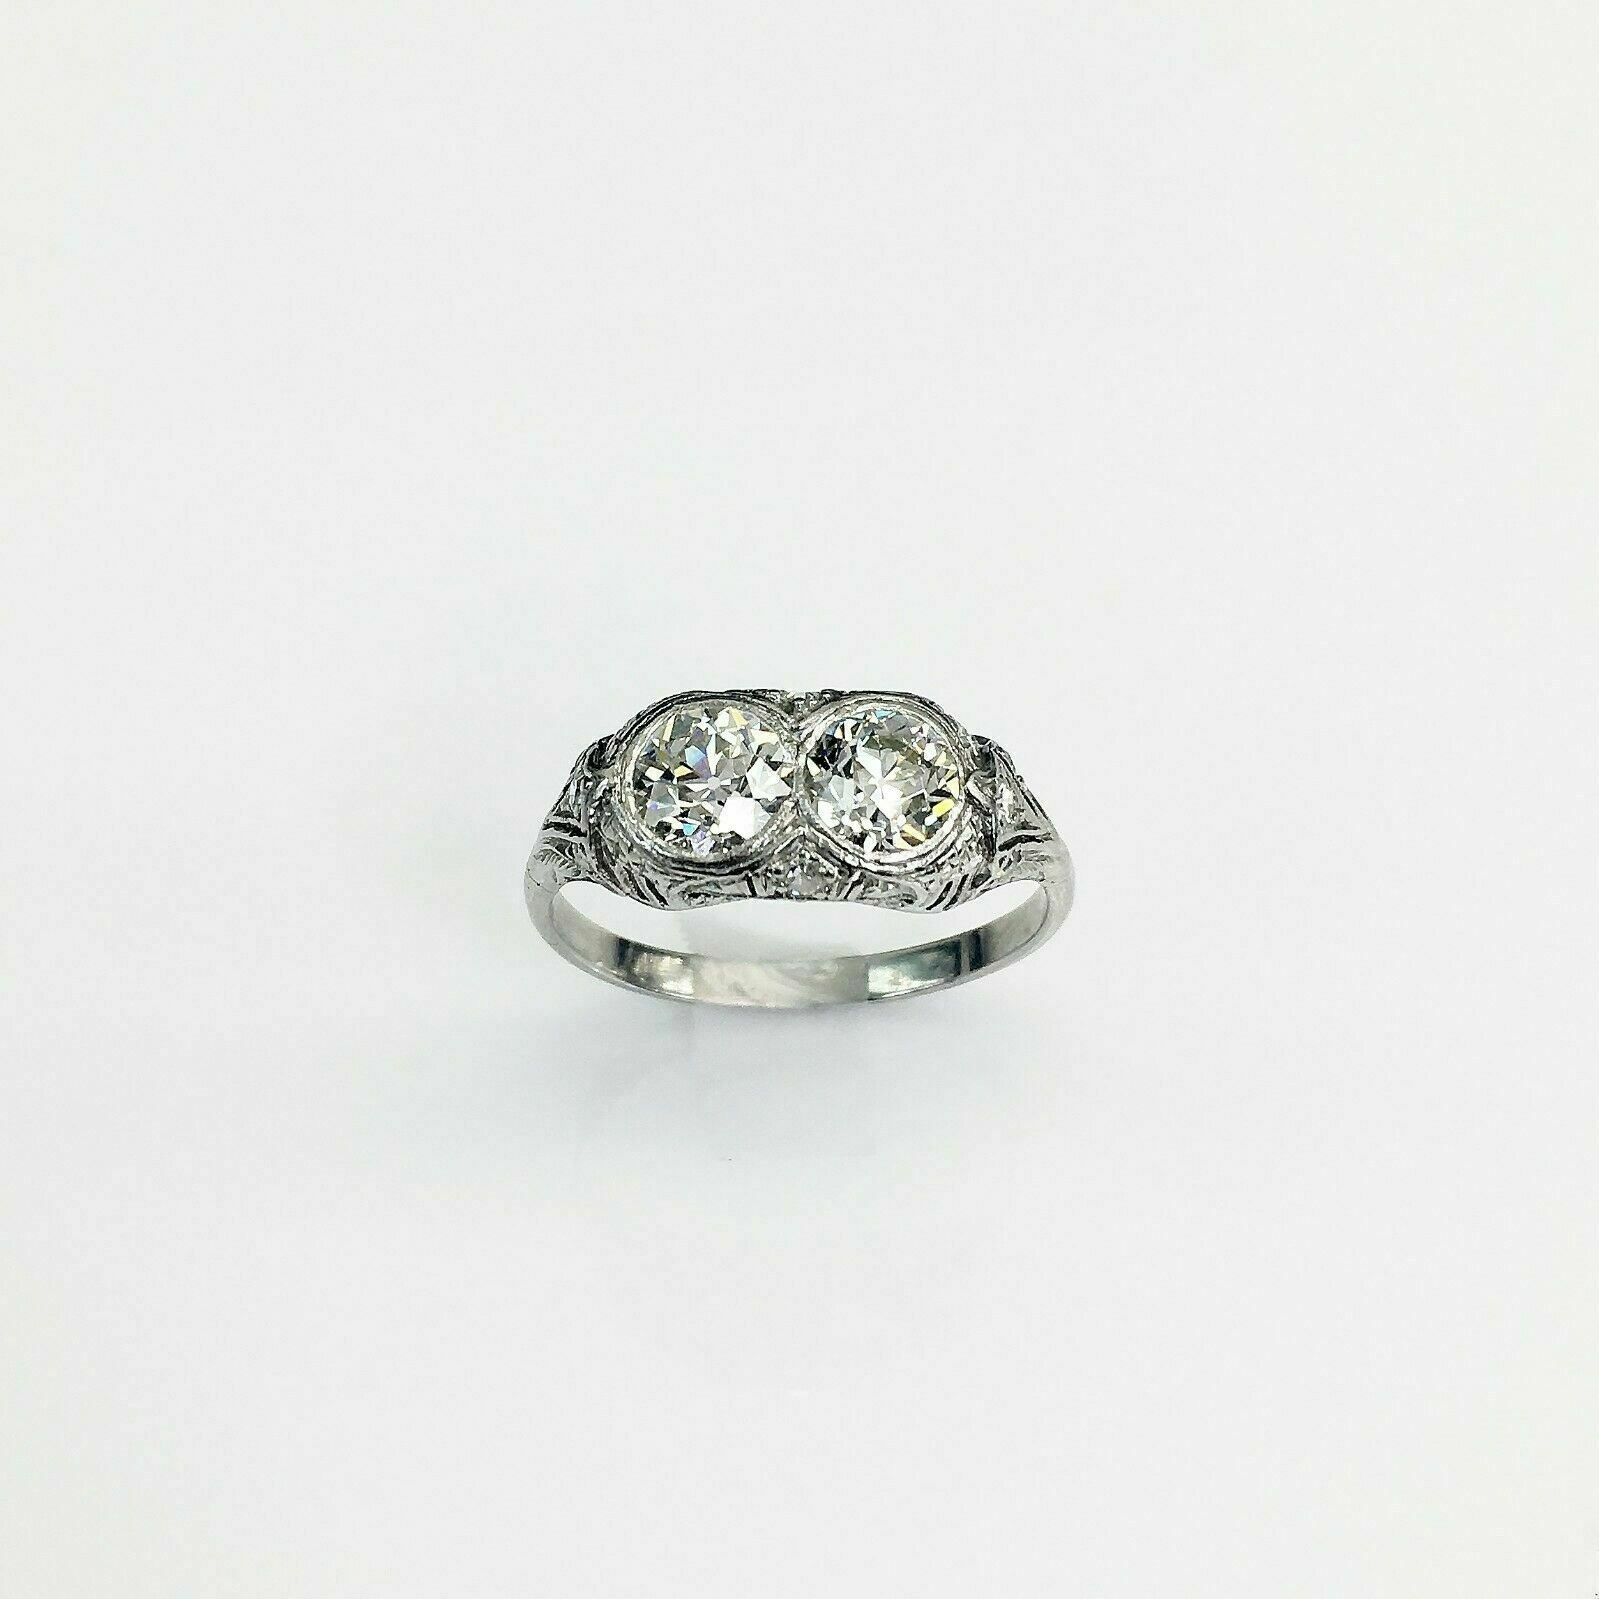 Antique Art Deco Platinum Diamond Wedding Ring Circa 1940's Majority VS Diamonds